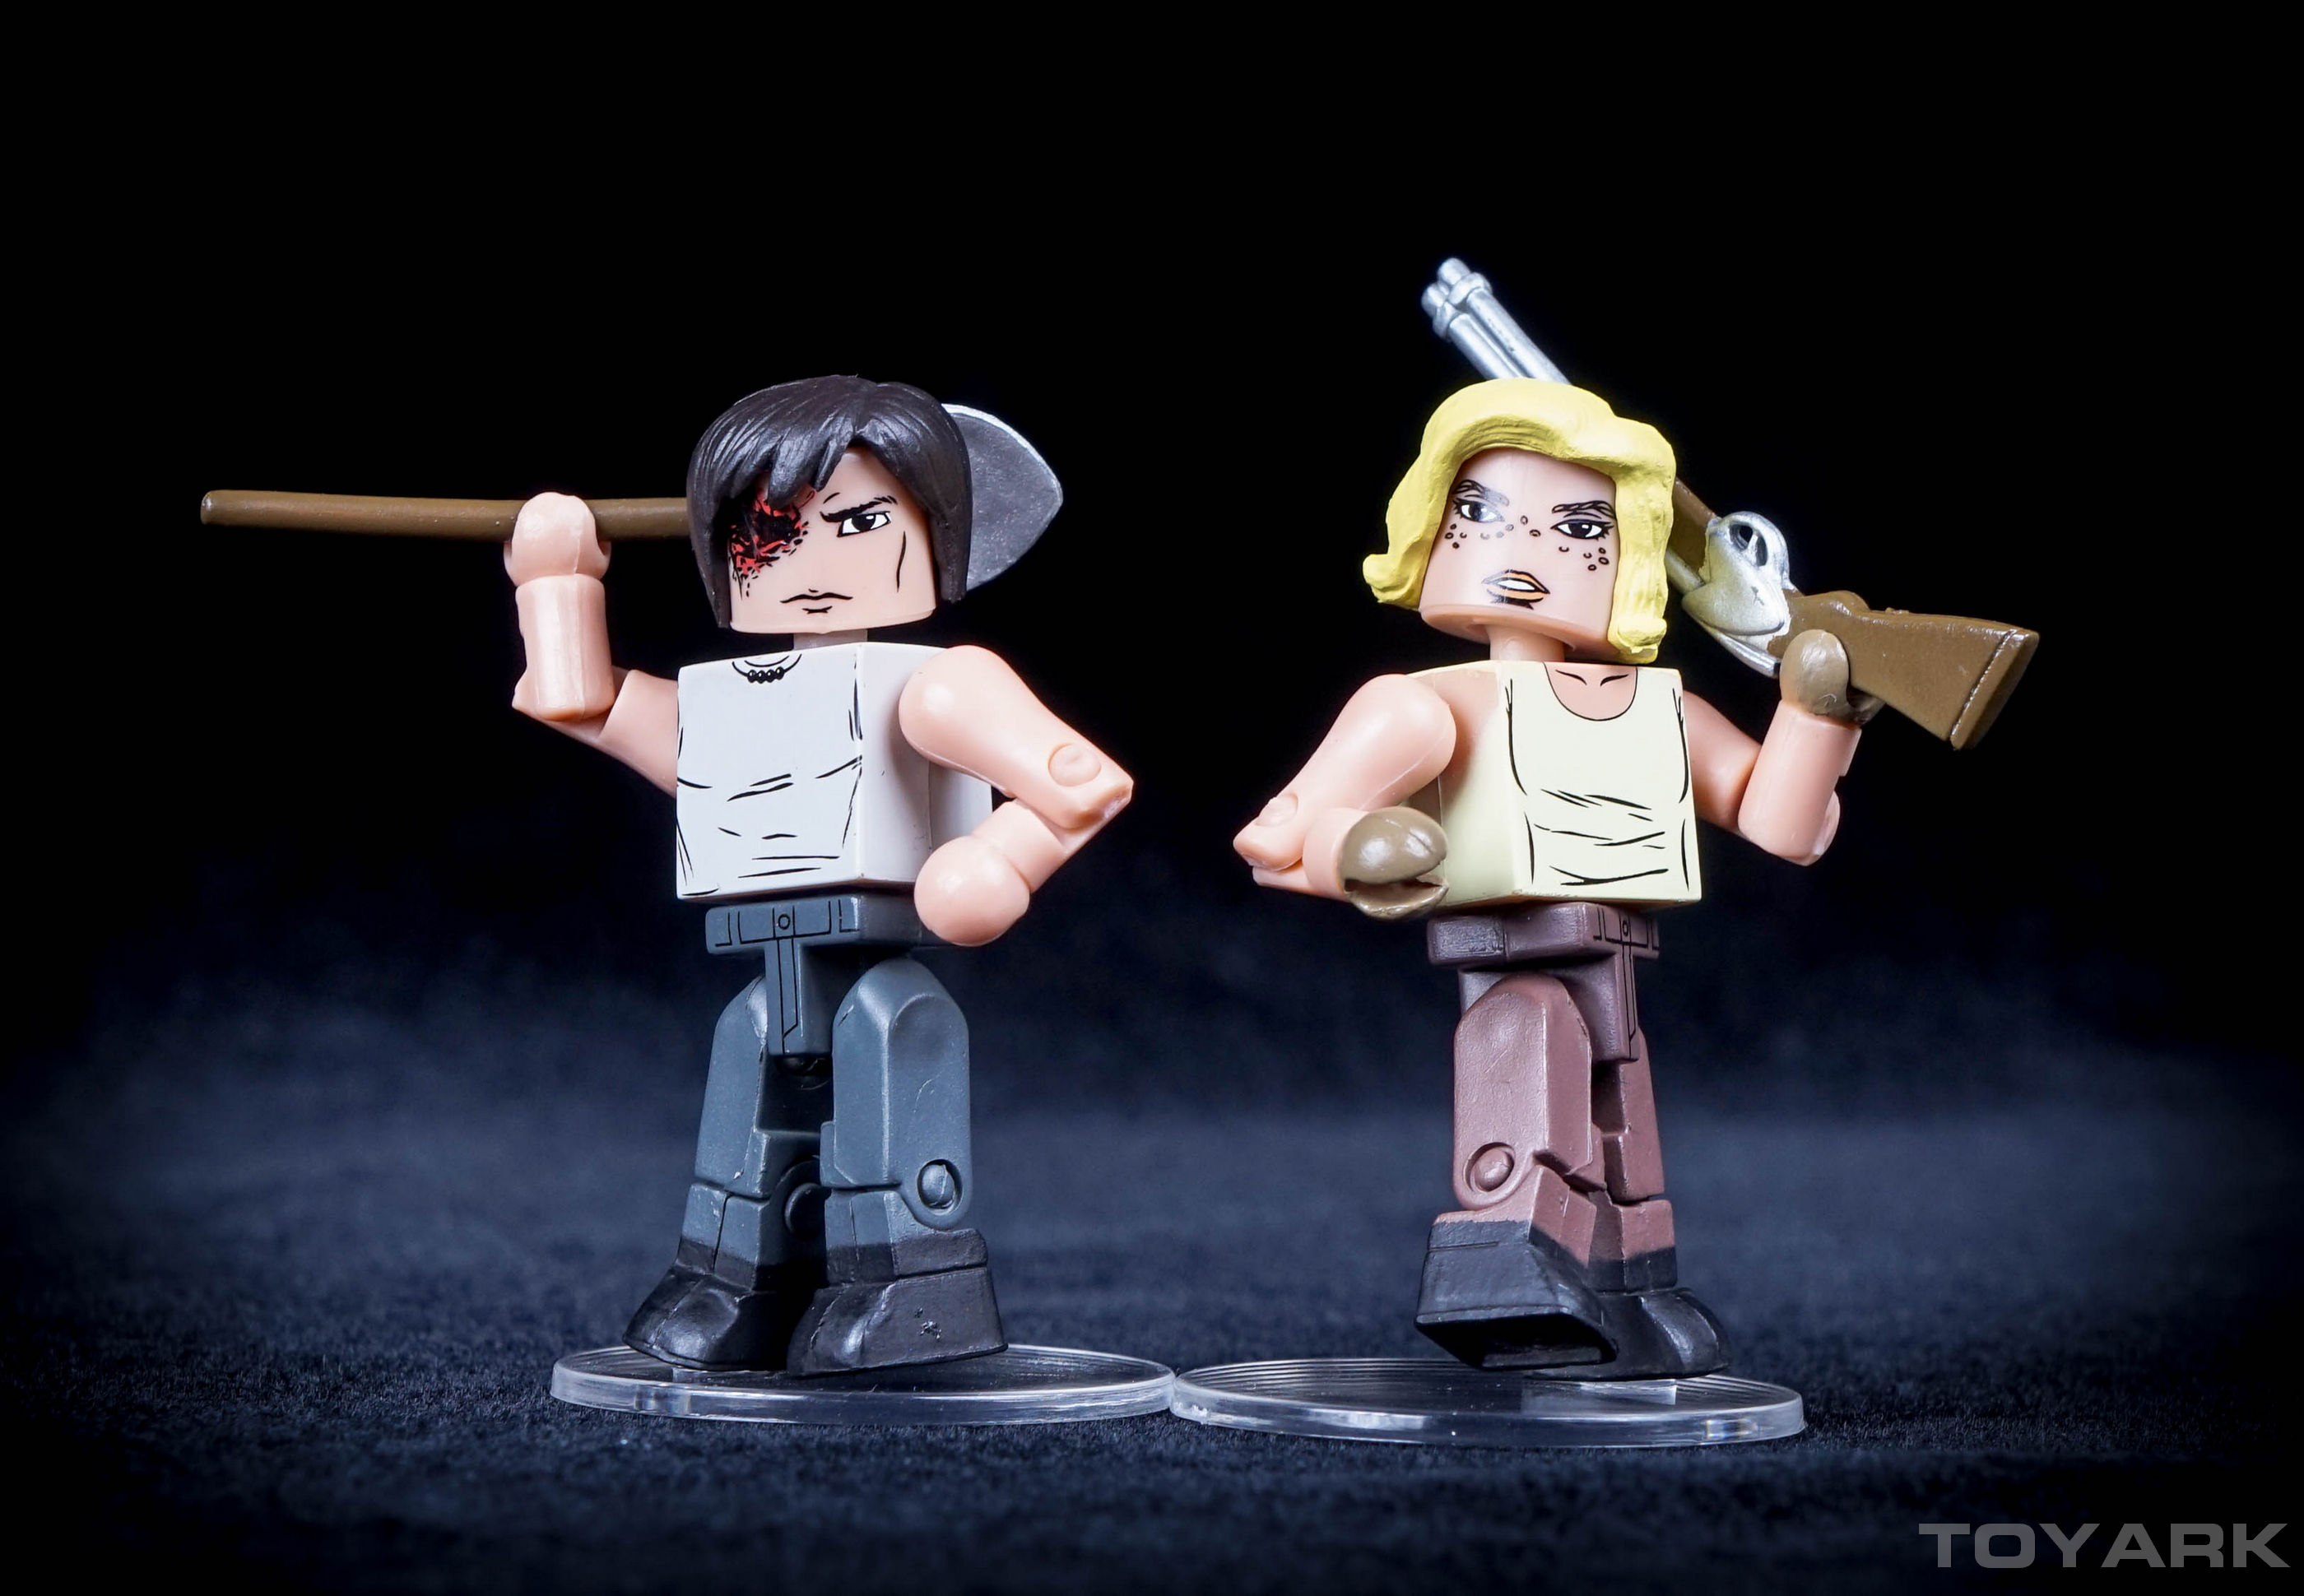 http://news.toyark.com/wp-content/uploads/sites/4/2015/11/Walking-Dead-S8-Minimates-092.jpg